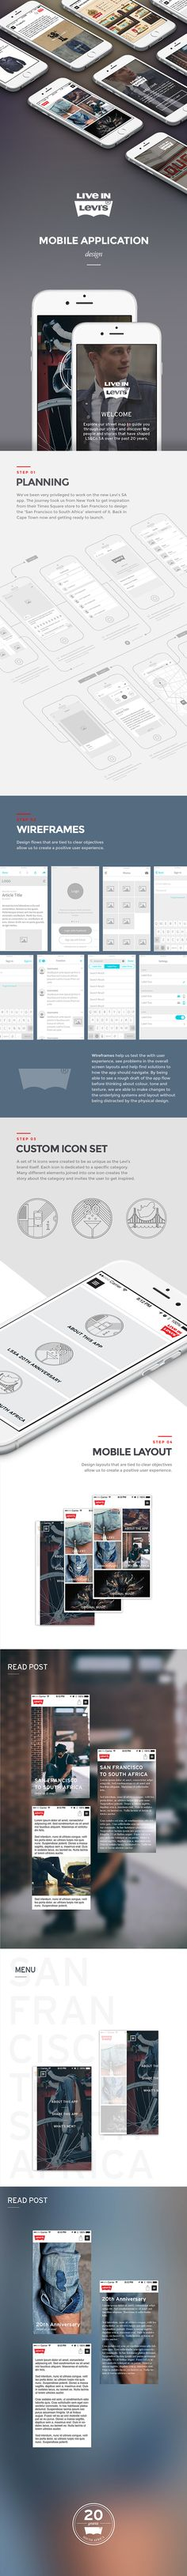 Levi's Mobile App on App Design Served